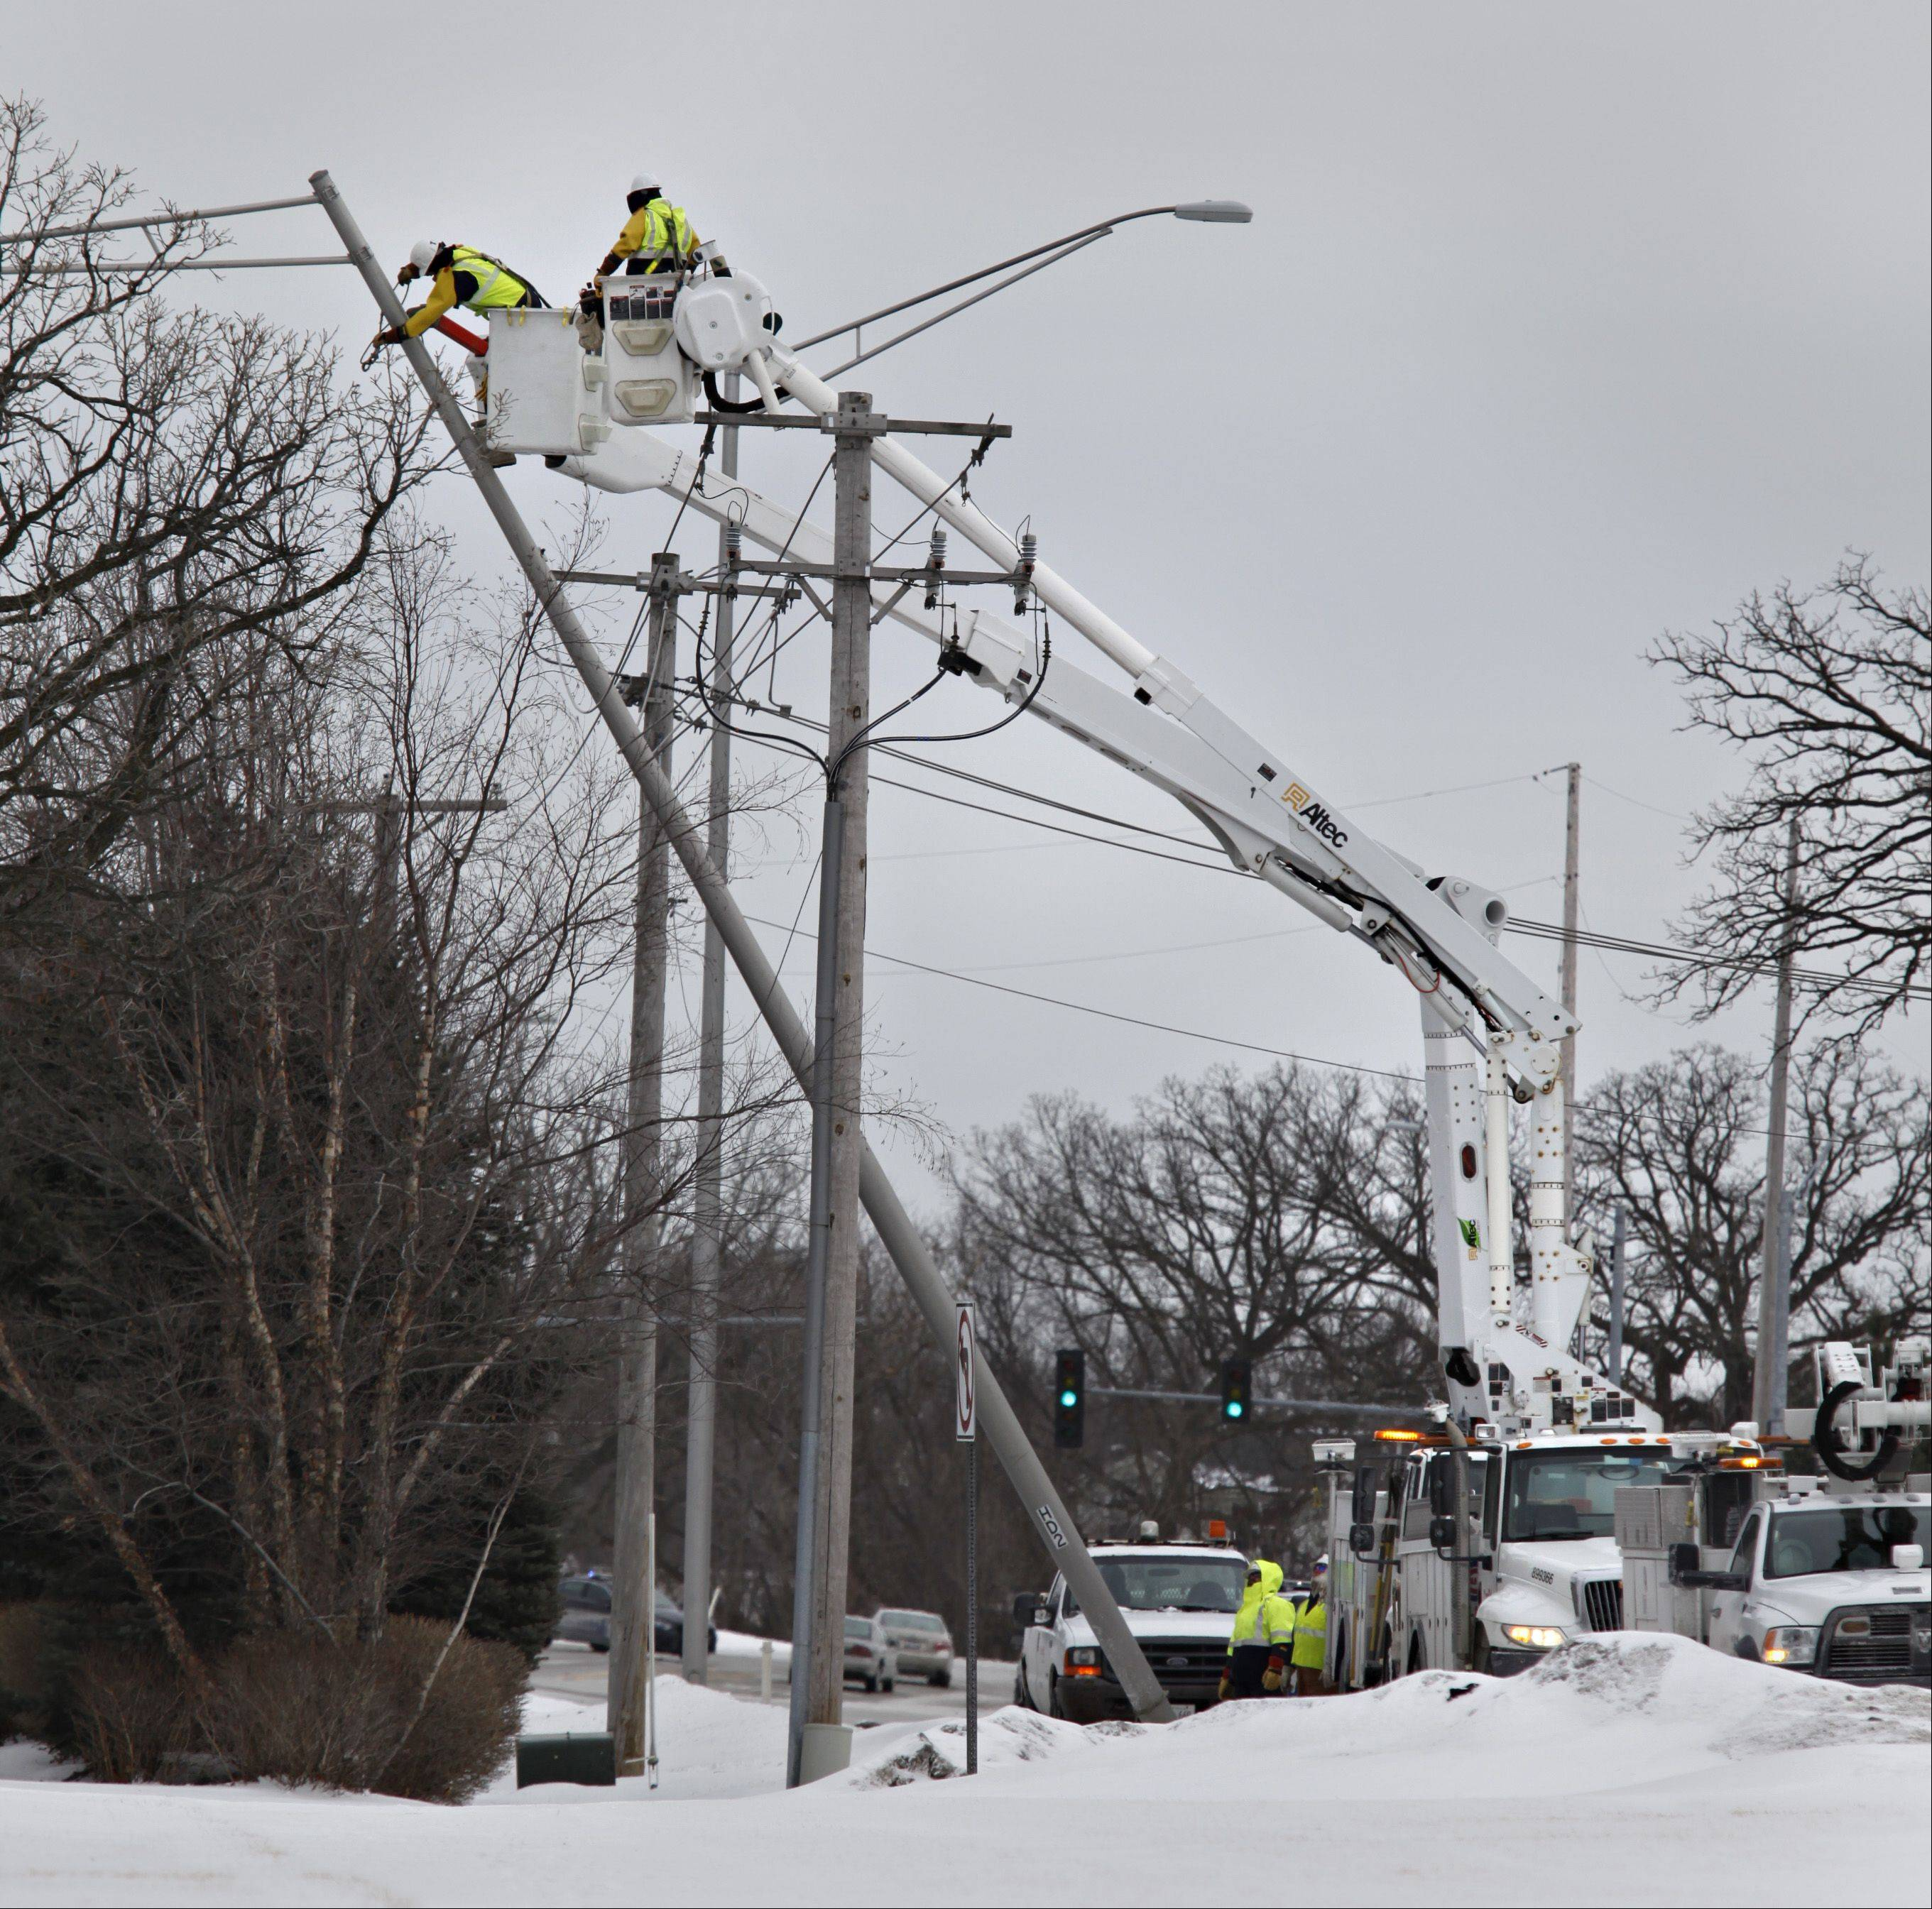 A ComEd crew works to secure an overhead streetlight along Huntley Road in Carpentersville that was likely blown over in Friday's high winds, landing on power lines below. More than 1,000 residents in Carpentersville, Algonquin and West Dundee were out of power for nearly 90 minutes.